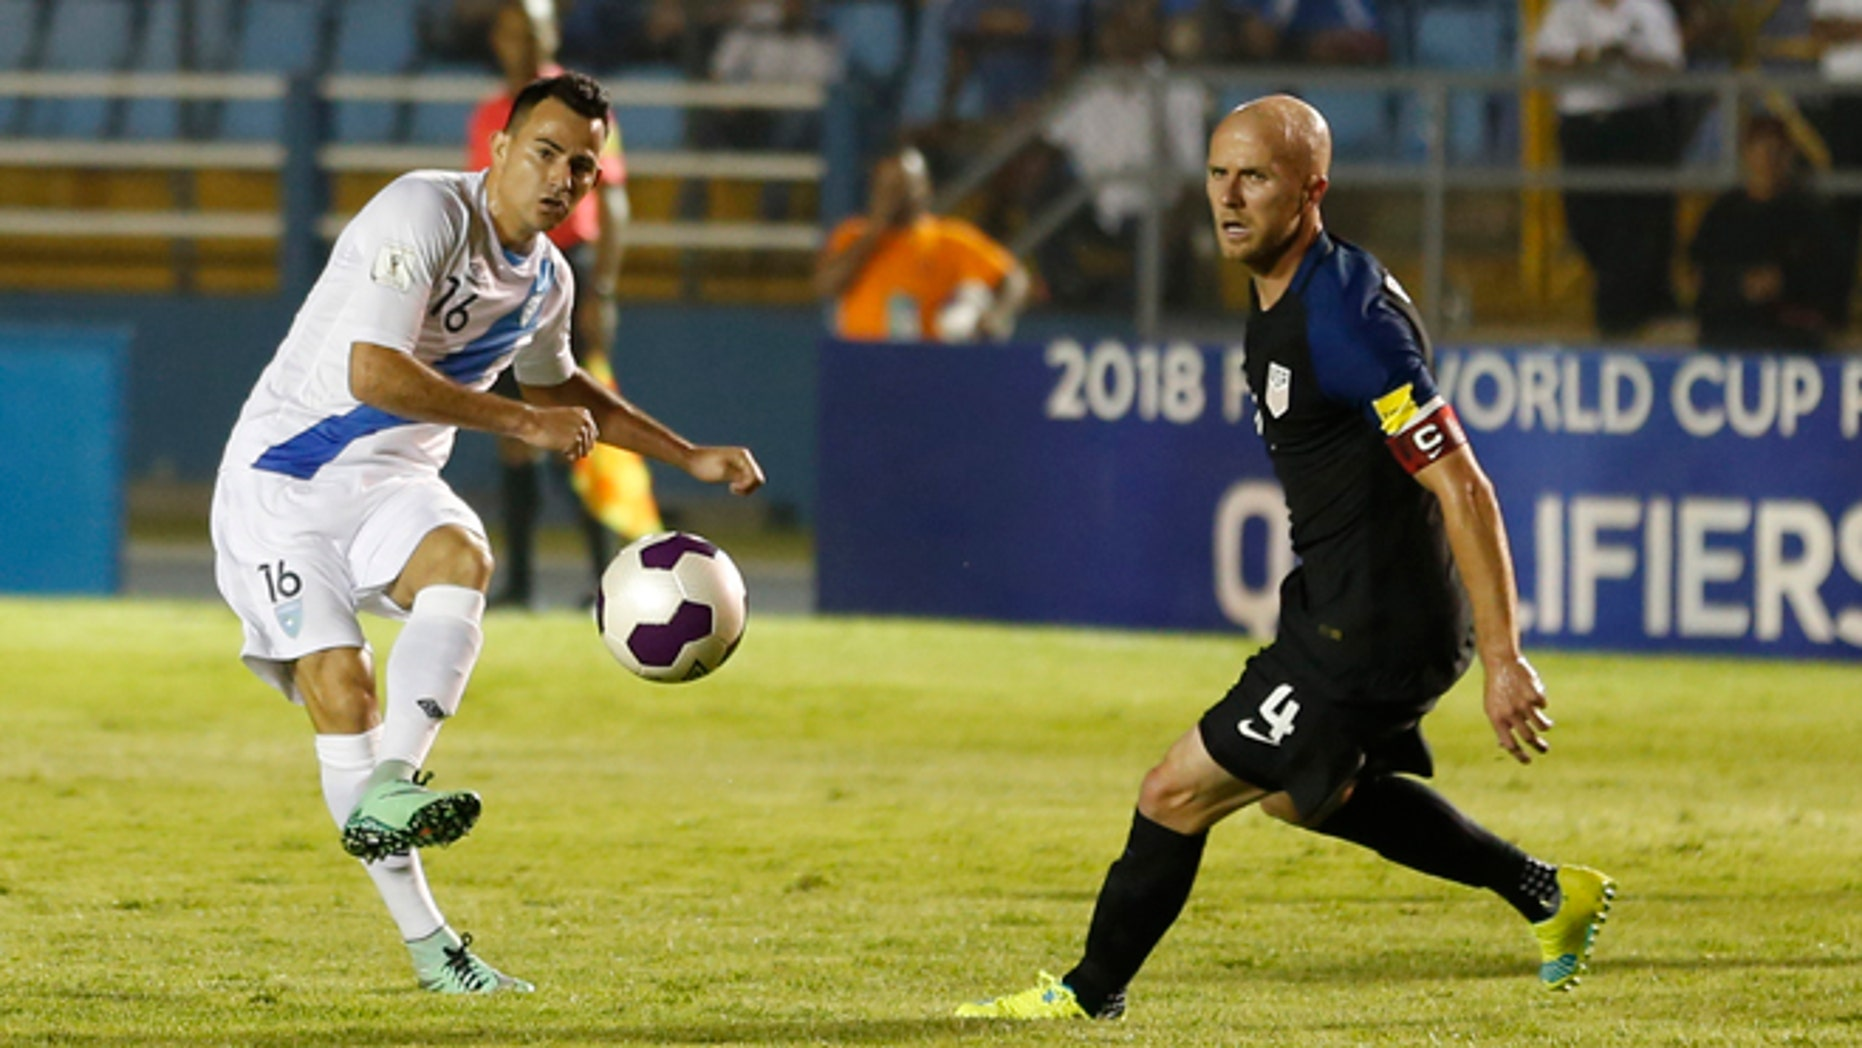 Guatemala's Marco Papa, left, kicks the ball as United States' Michael Bradley looks on during a 2018 Russia World Cup qualifying soccer match at Mateo Flores Stadium in Guatemala City, Friday, March 25, 2016. Guatemala won 2-0. (AP Photo/ Moises Castillo)